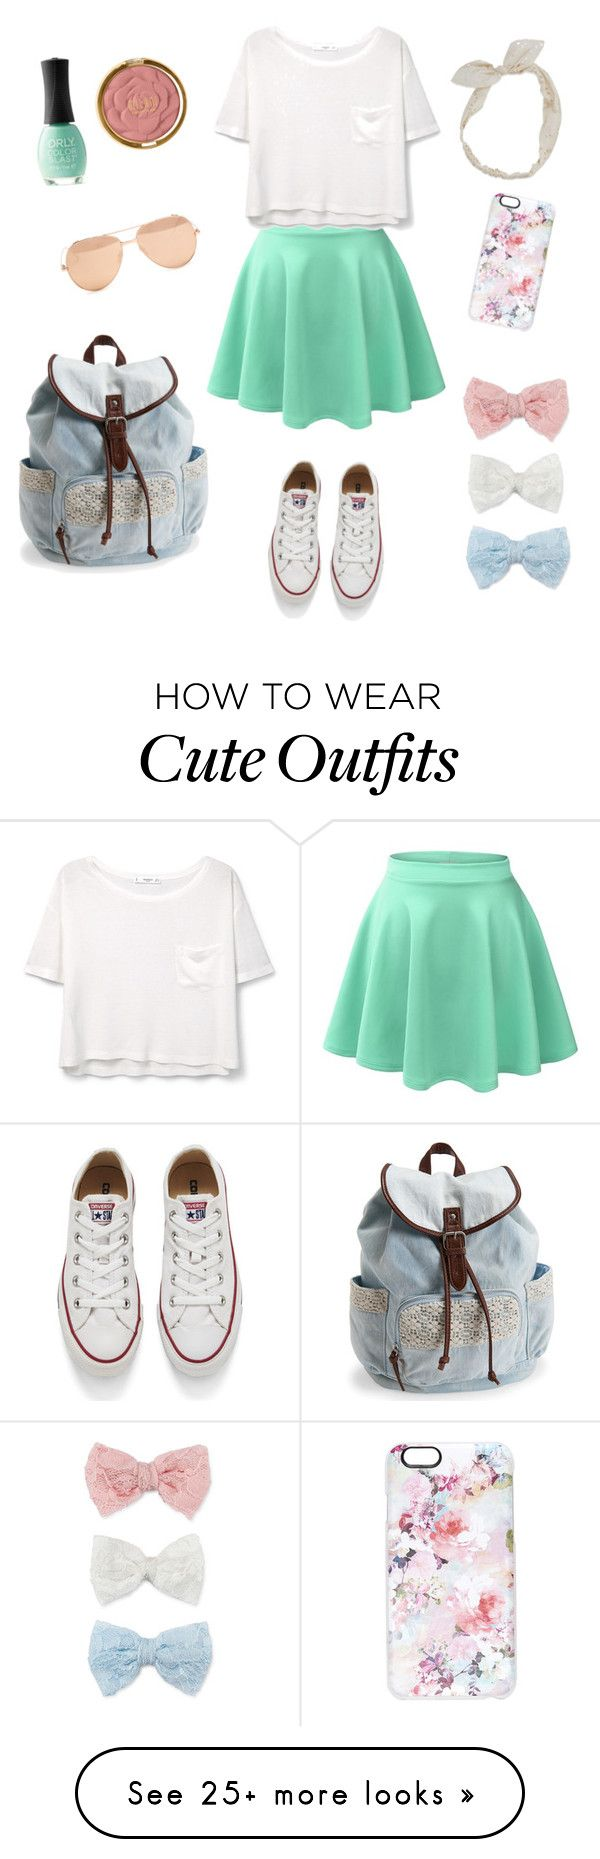 """""""Cute School Outfit"""" by scamper623 on Polyvore featuring Decree, Converse, Carole, Milani, ORLY, LE3NO, MANGO, Aéropostale, Linda Farrow and Casetify"""